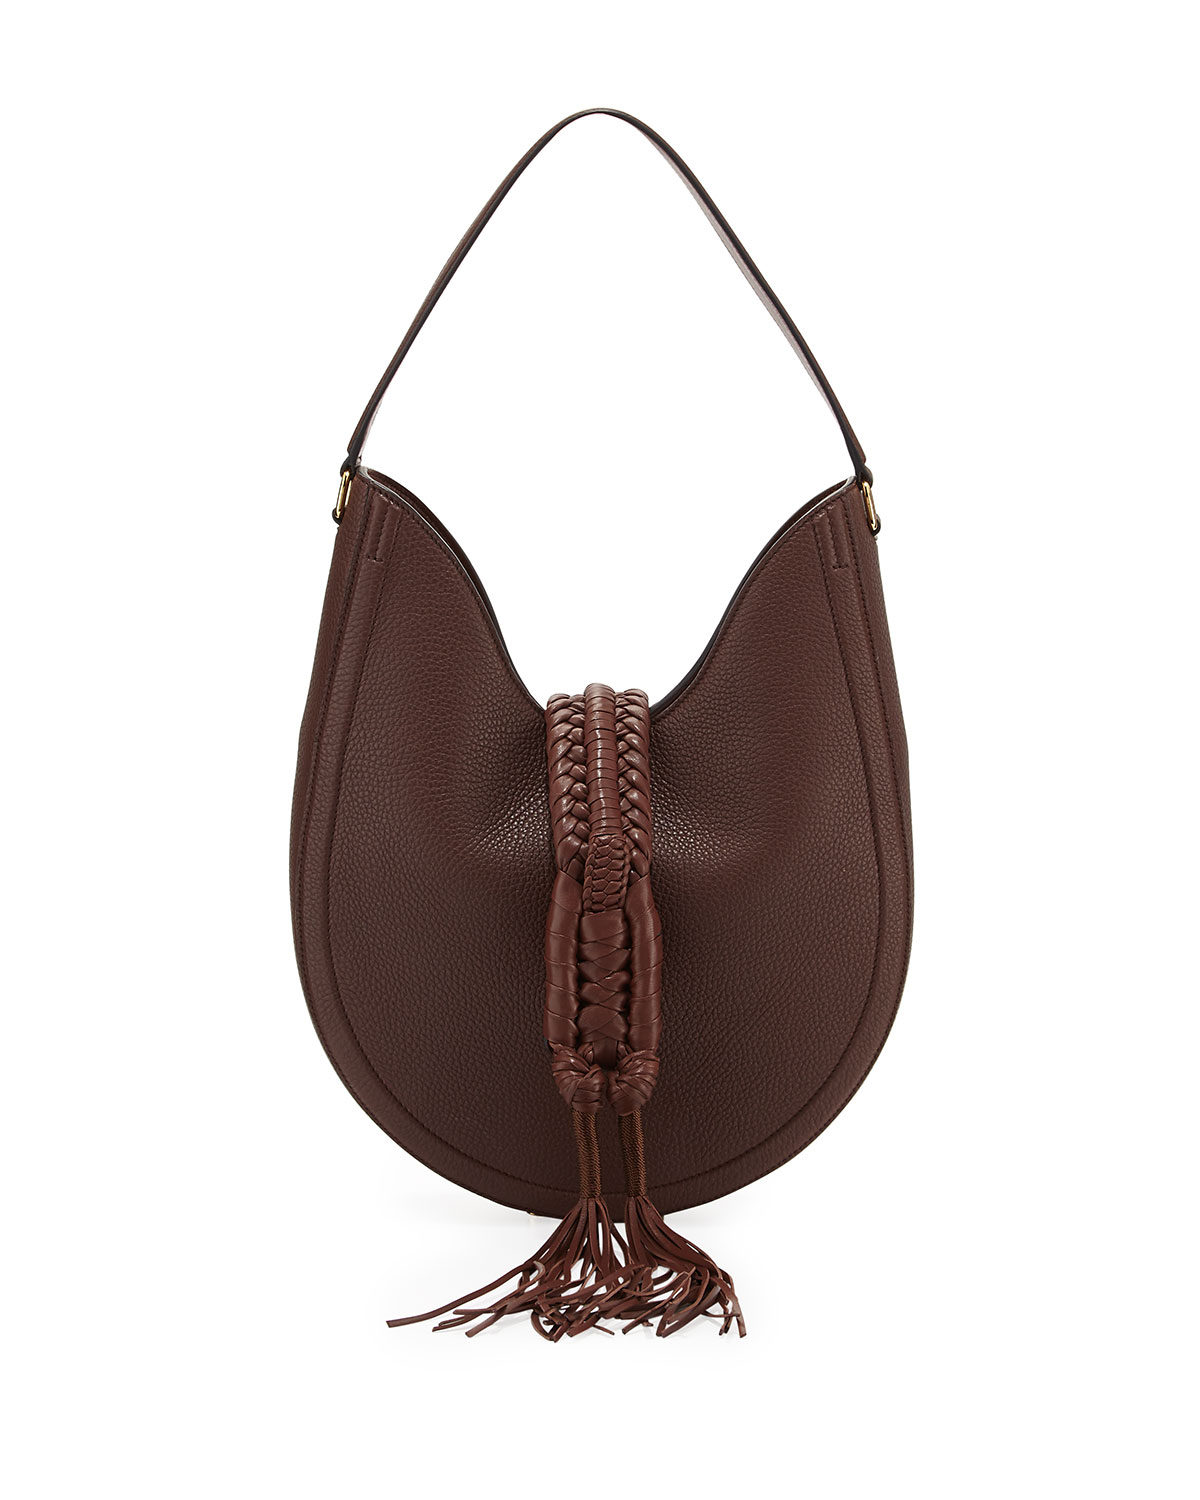 60f4fb78f19 Altuzarra Ghianda Small Woven Leather Hobo Bag | Neiman Marcus